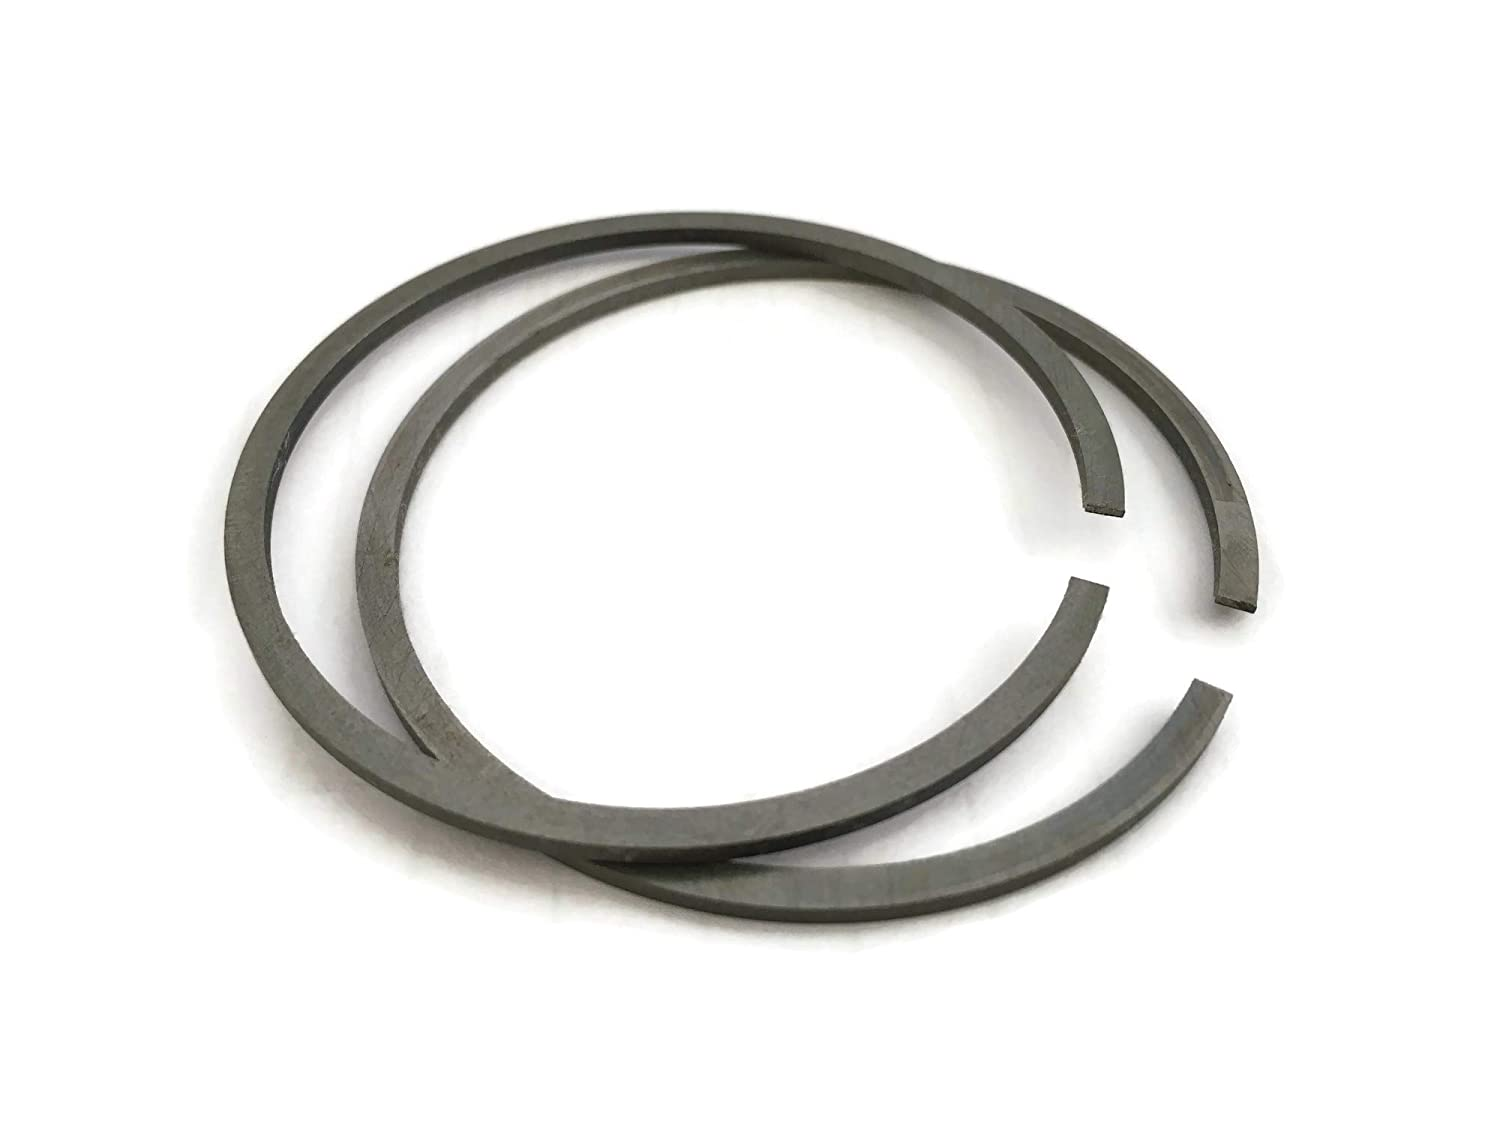 Piston Ring Rings Set 49mm x 1.5mm thickness for STIHL 039 MS390 08S TS 360 TS 3605 Dolmar 120 Makita DCS6800 PS 6800 i Oleomac 261 Chainsaw Brushcutters Engine